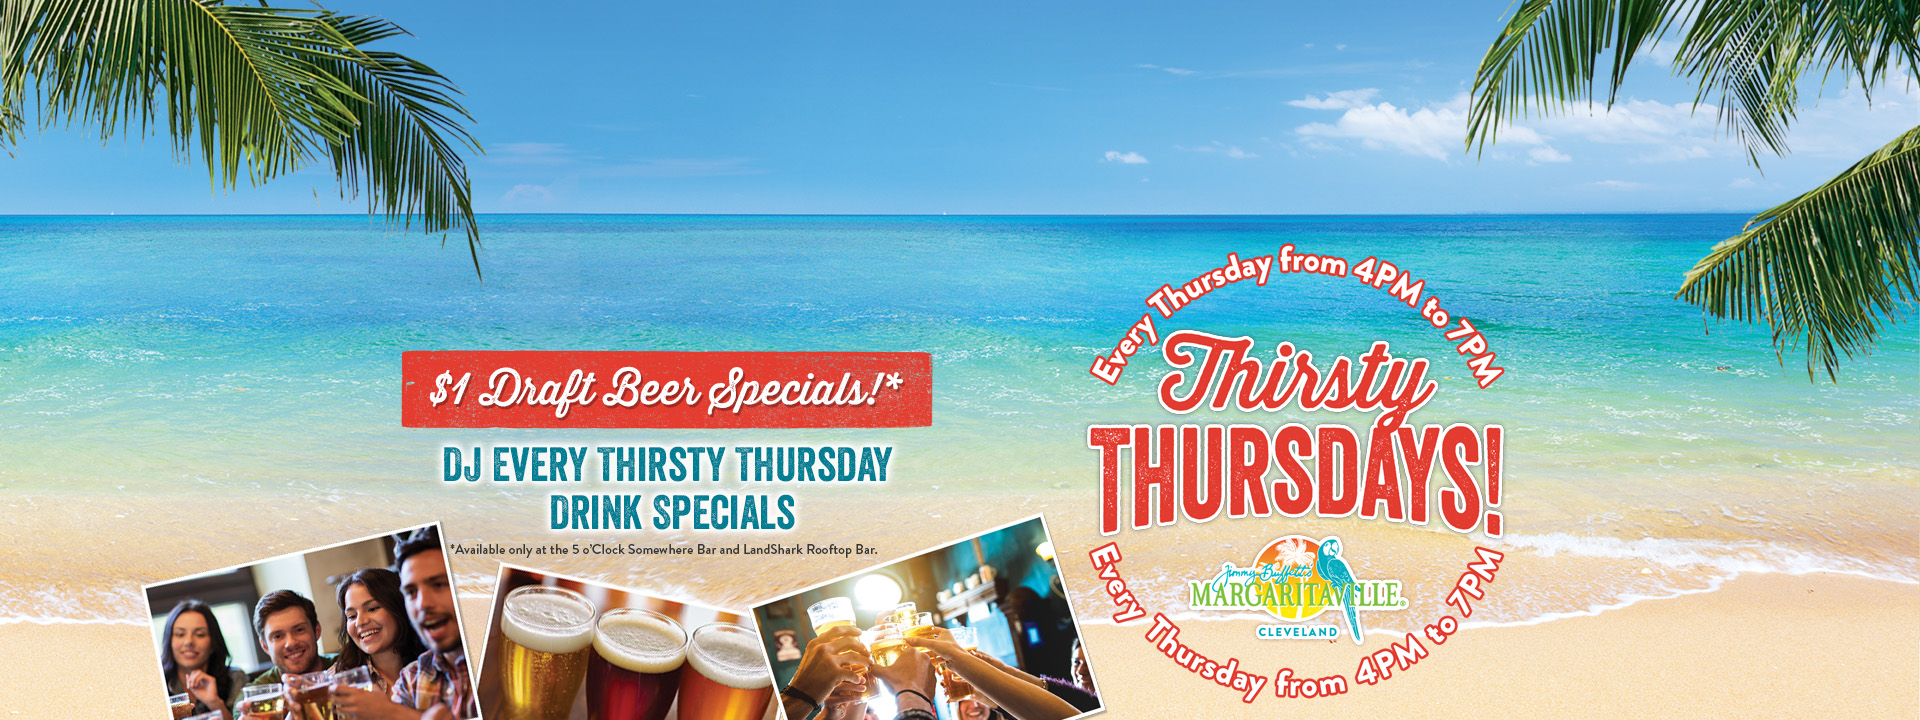 Text on image: Thirsty Thursdays! Every thursday from 4PM to 7PM. $1 Draft Beer Specials! Available only at the 5 o'Clock Somewhere Bar and LandShark Rooftop Bar. DJ every thirsty thursday drink specials